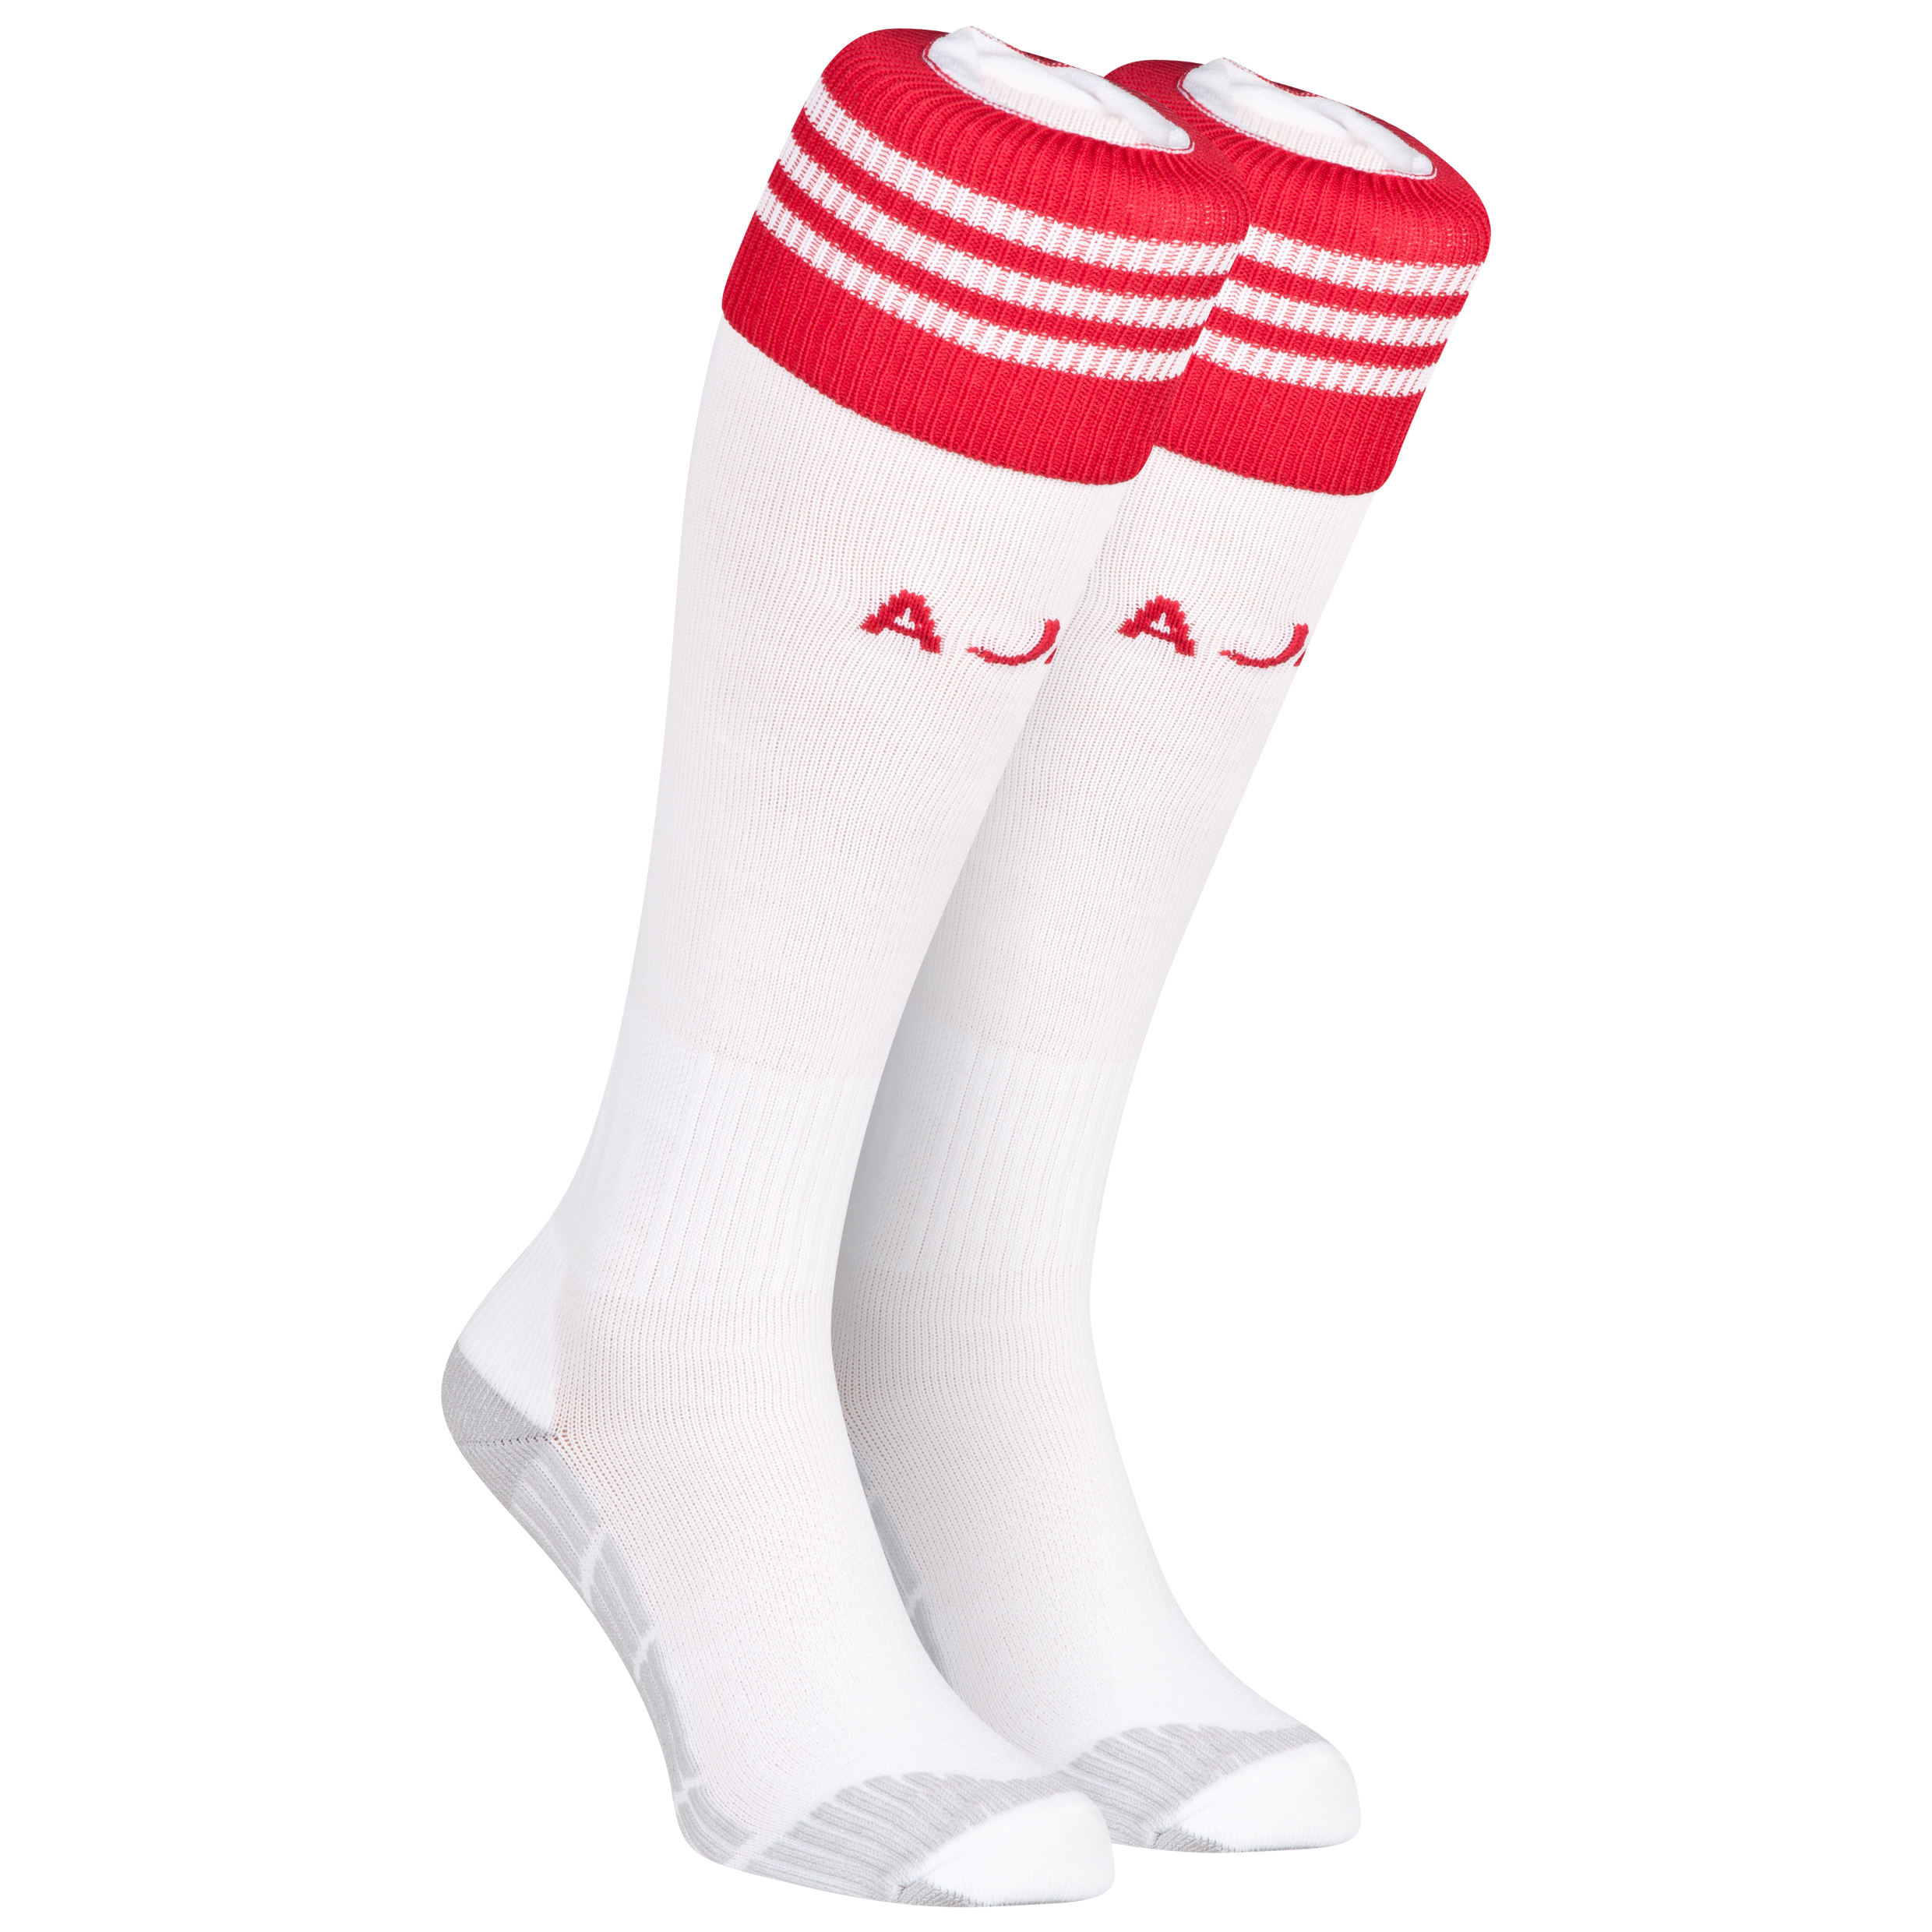 Ajax Home Socks 2013/14